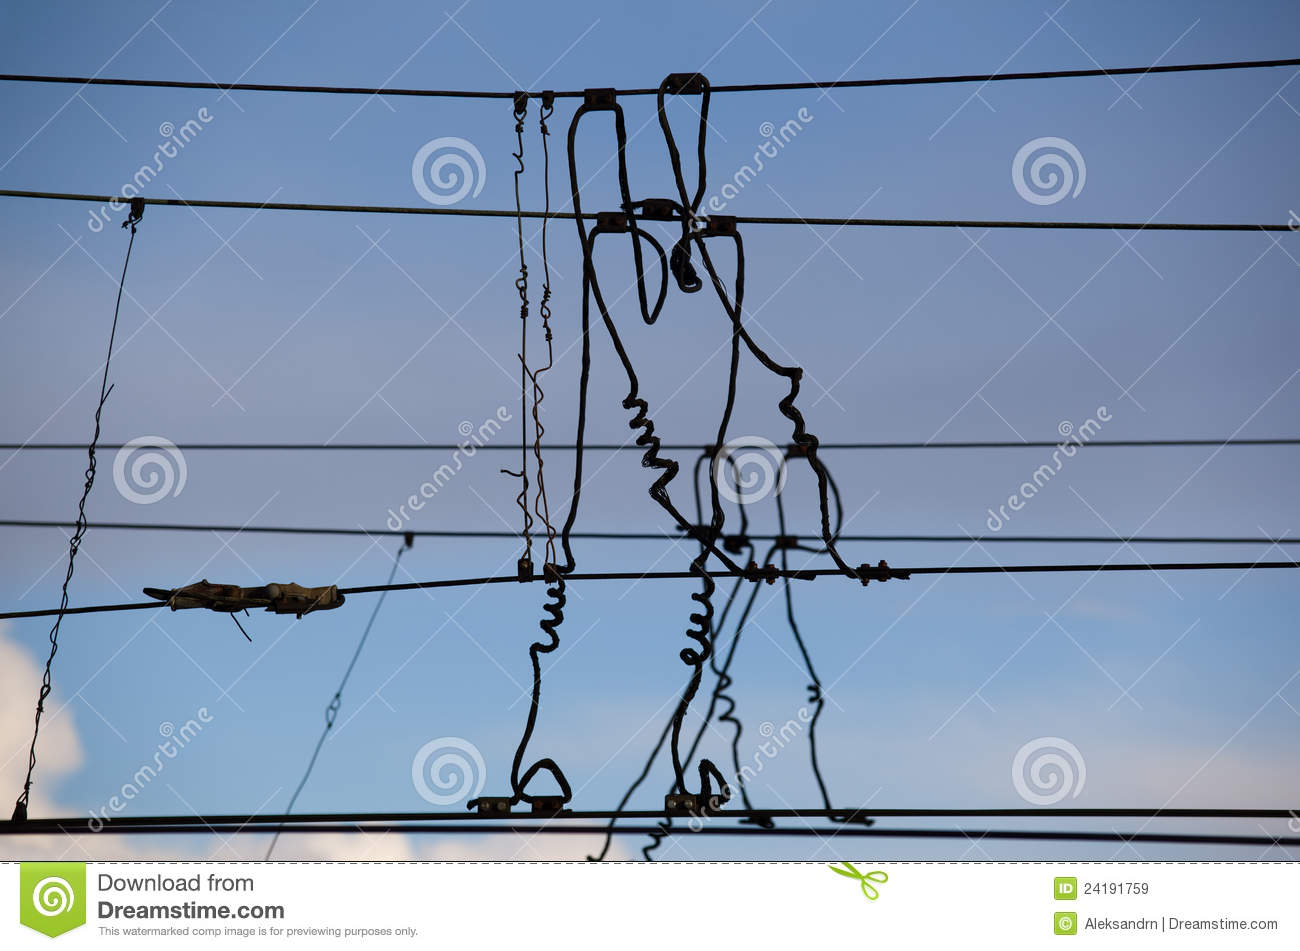 The beam catenary wires stock image. Image of voltage - 24191759